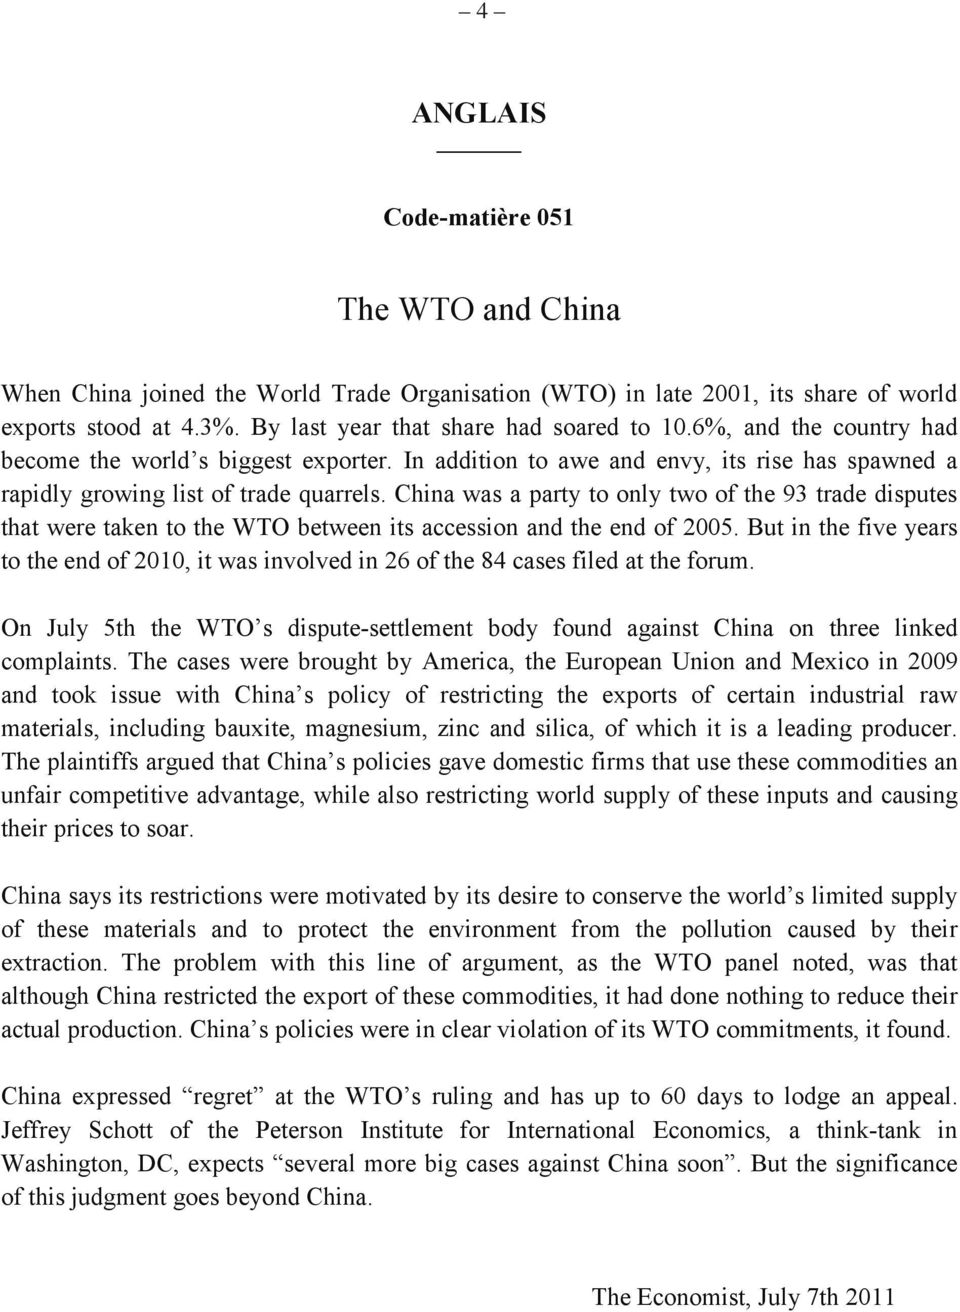 China was a party to only two of the 93 trade disputes that were taken to the WTO between its accession and the end of 2005.